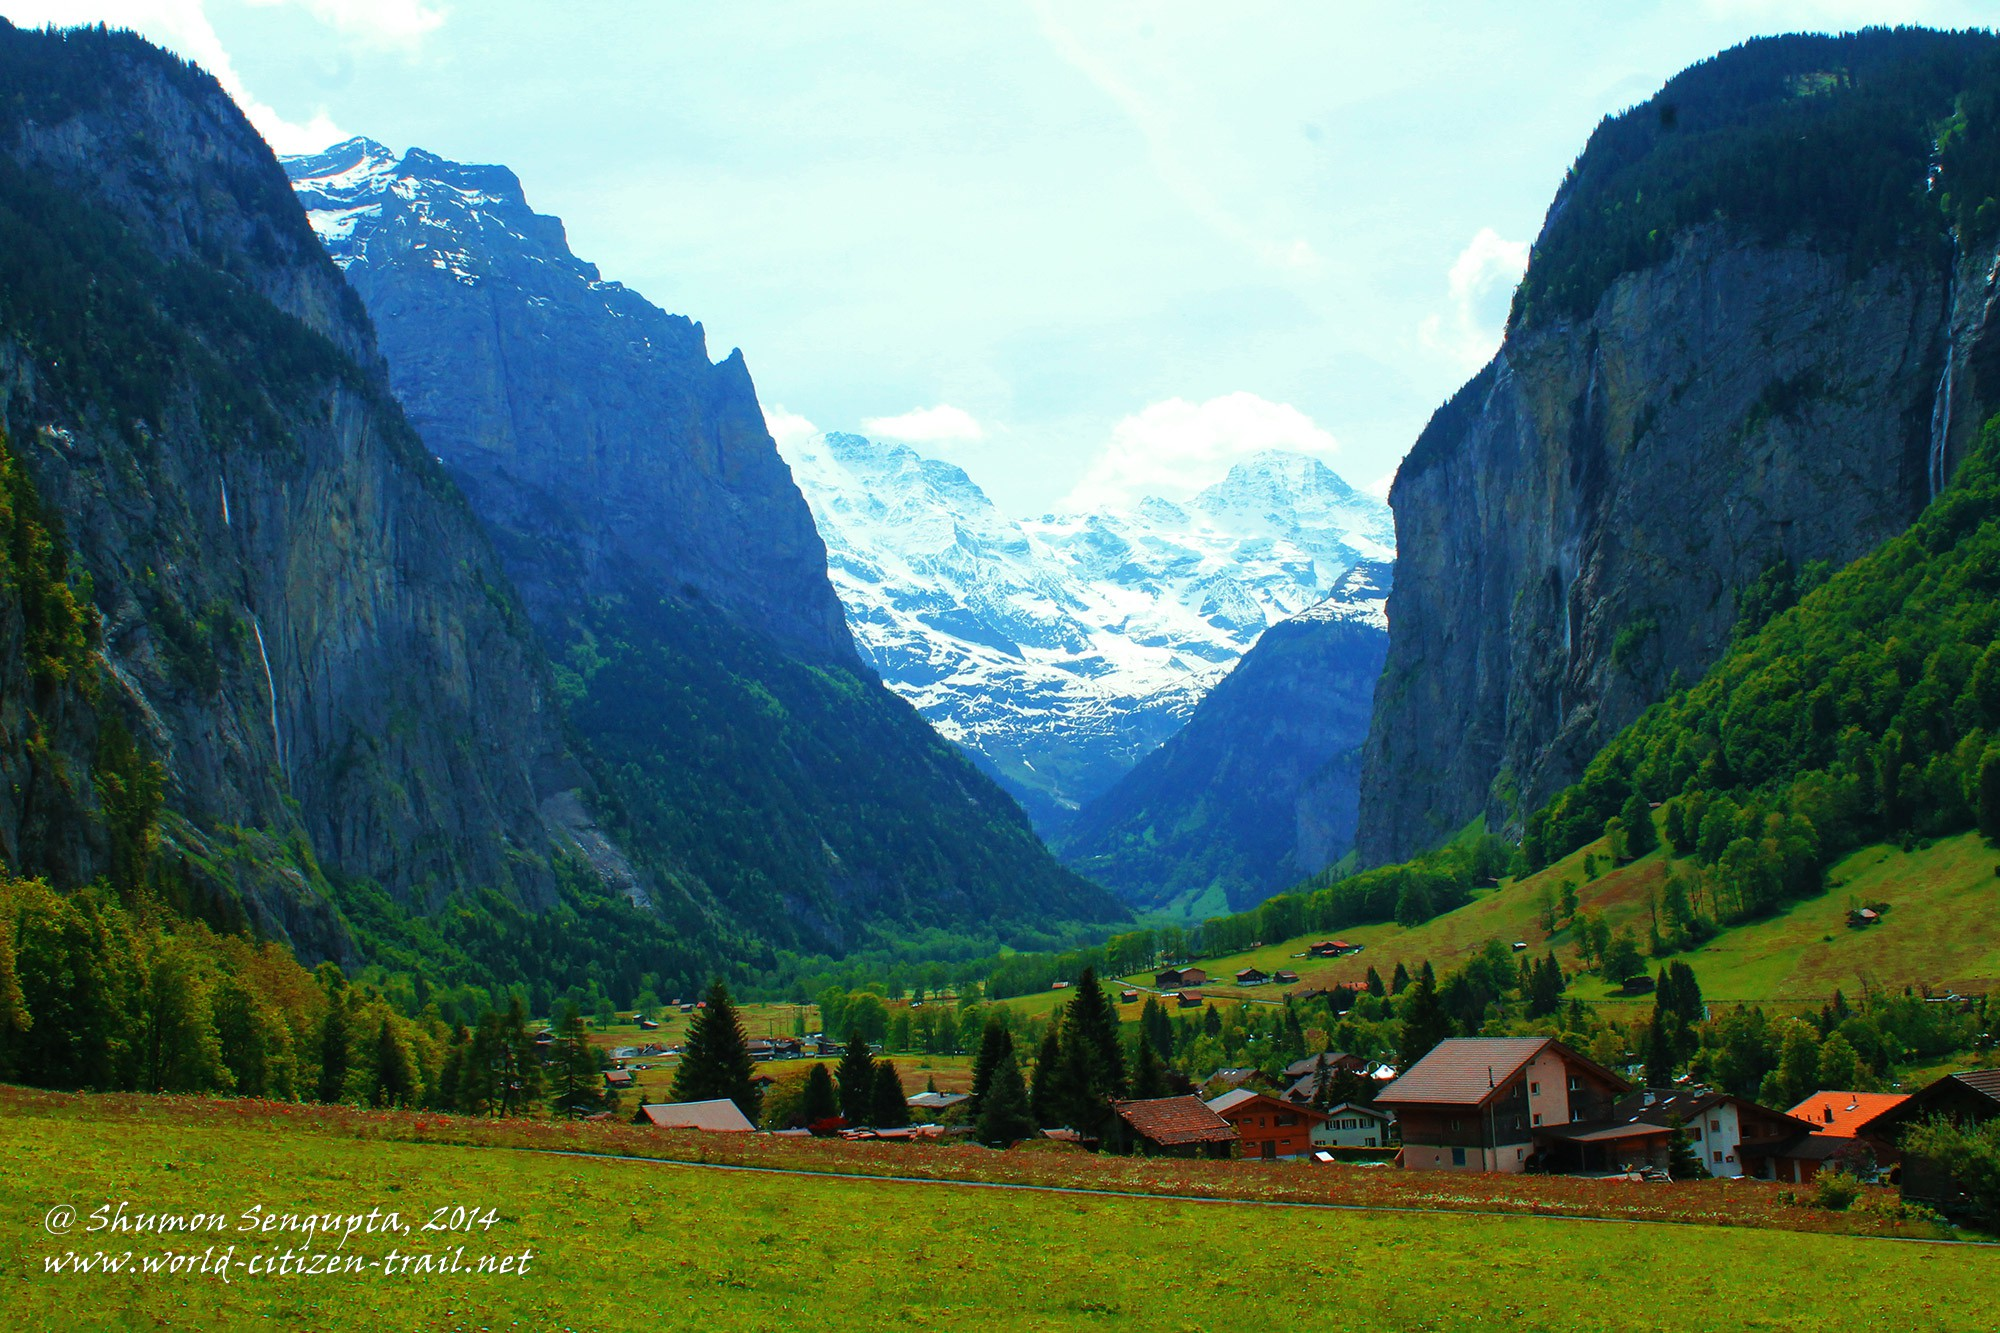 Lauterbrunnen: A Page from a Geography Text Book Coming Live